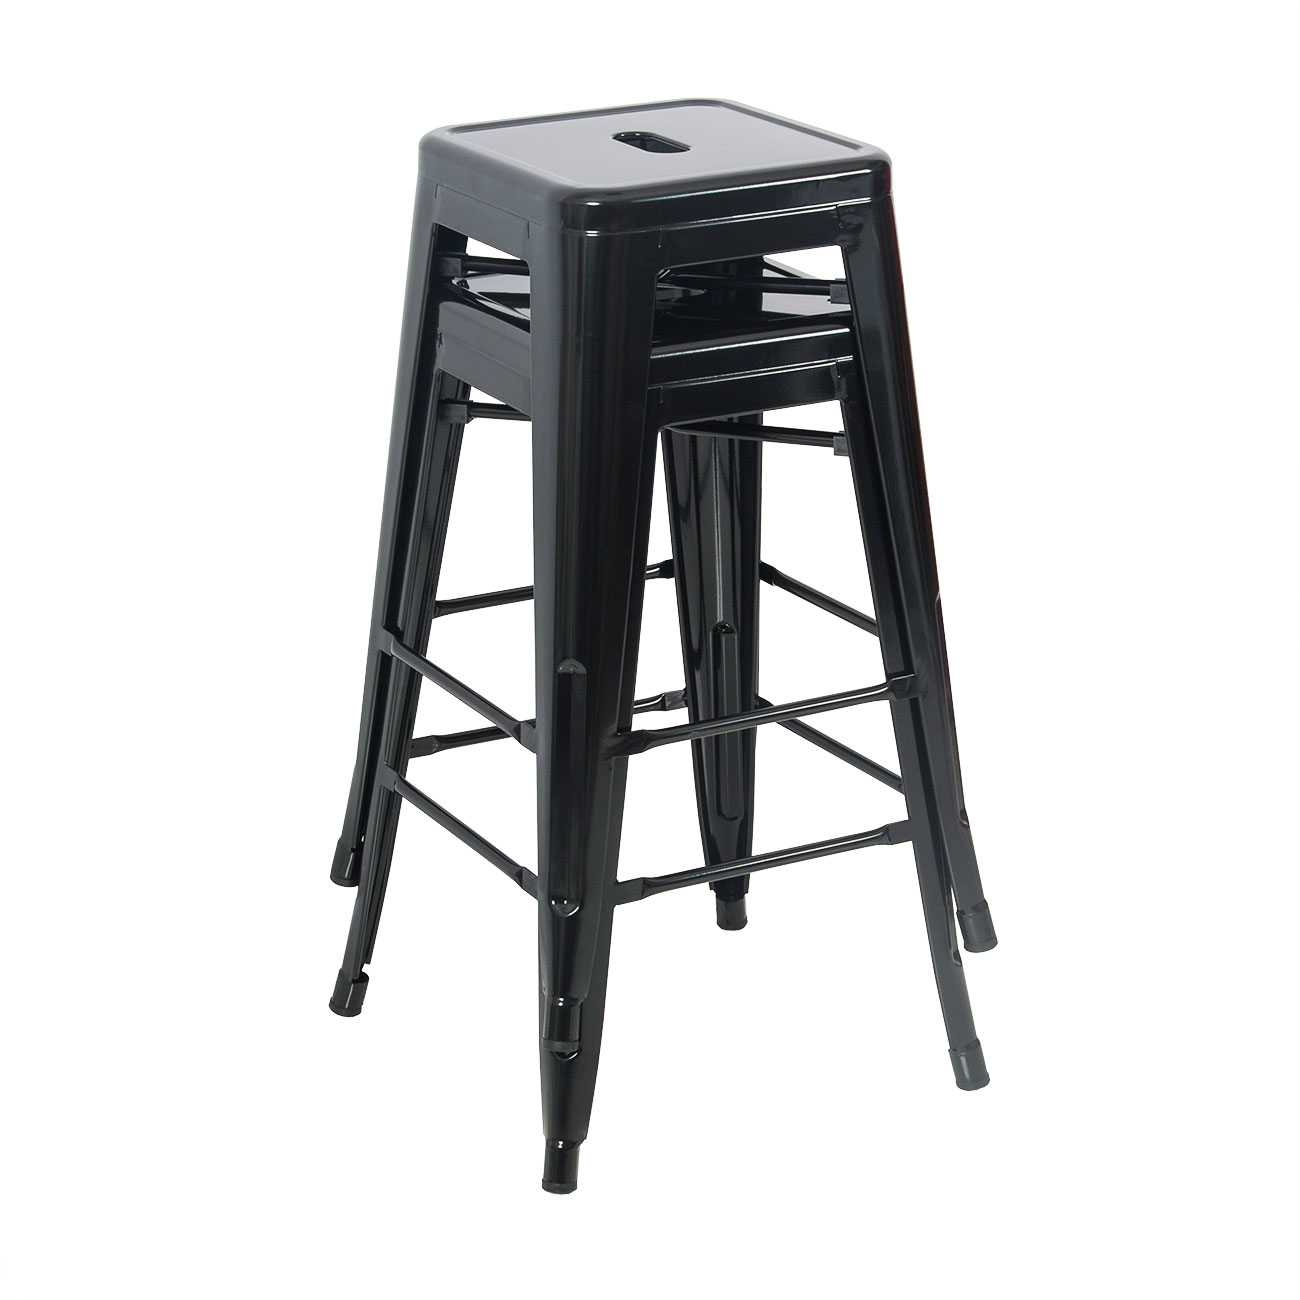 Set of 2 metal bar stool counter height home 24 26 30 for 24 inch bar stools